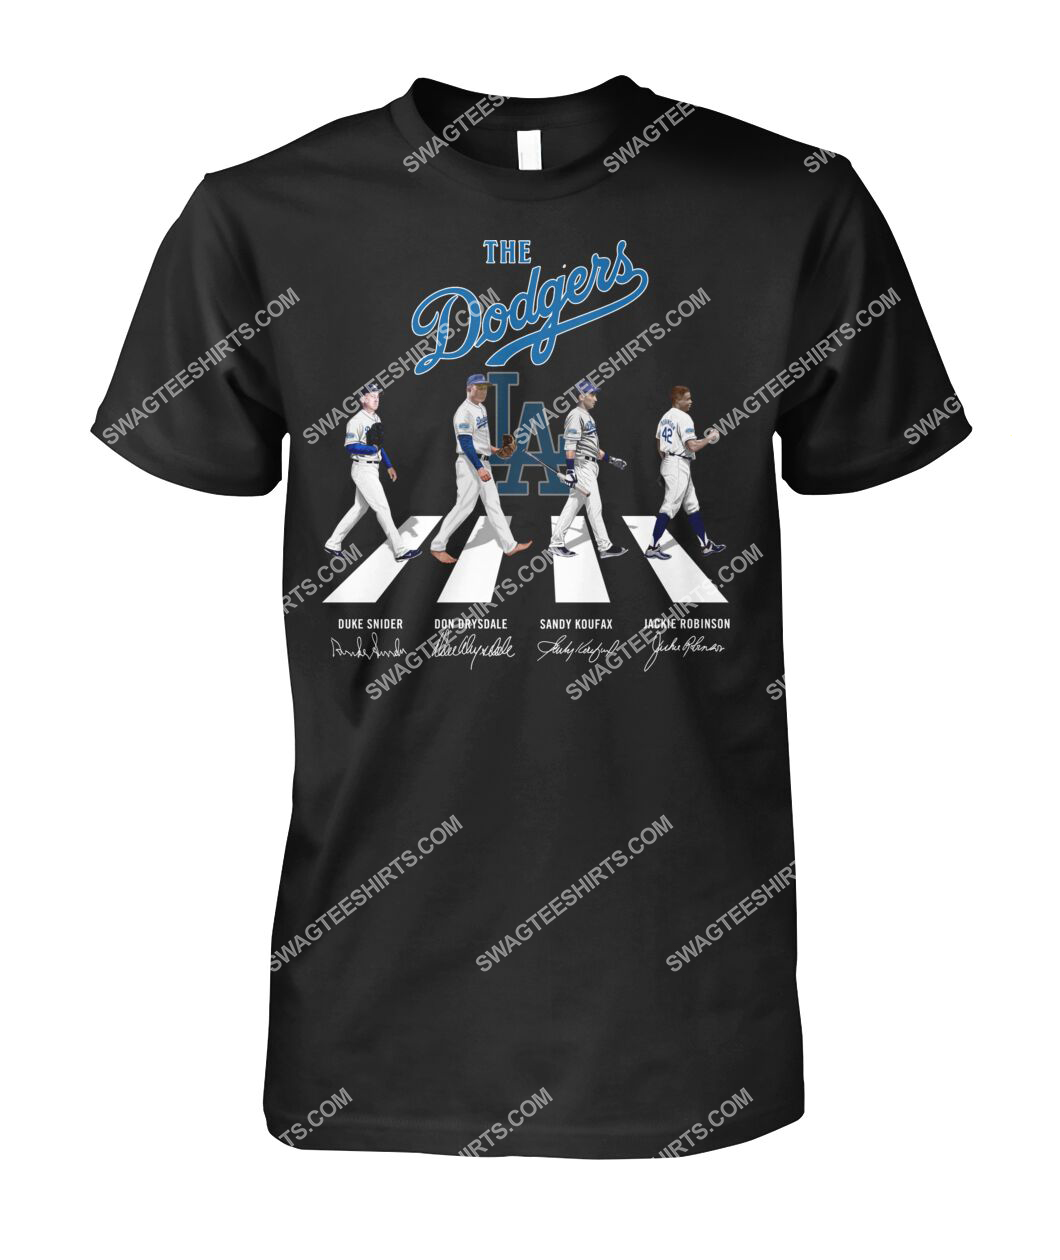 abbey road the los angeles dodgers signatures tshirt 1